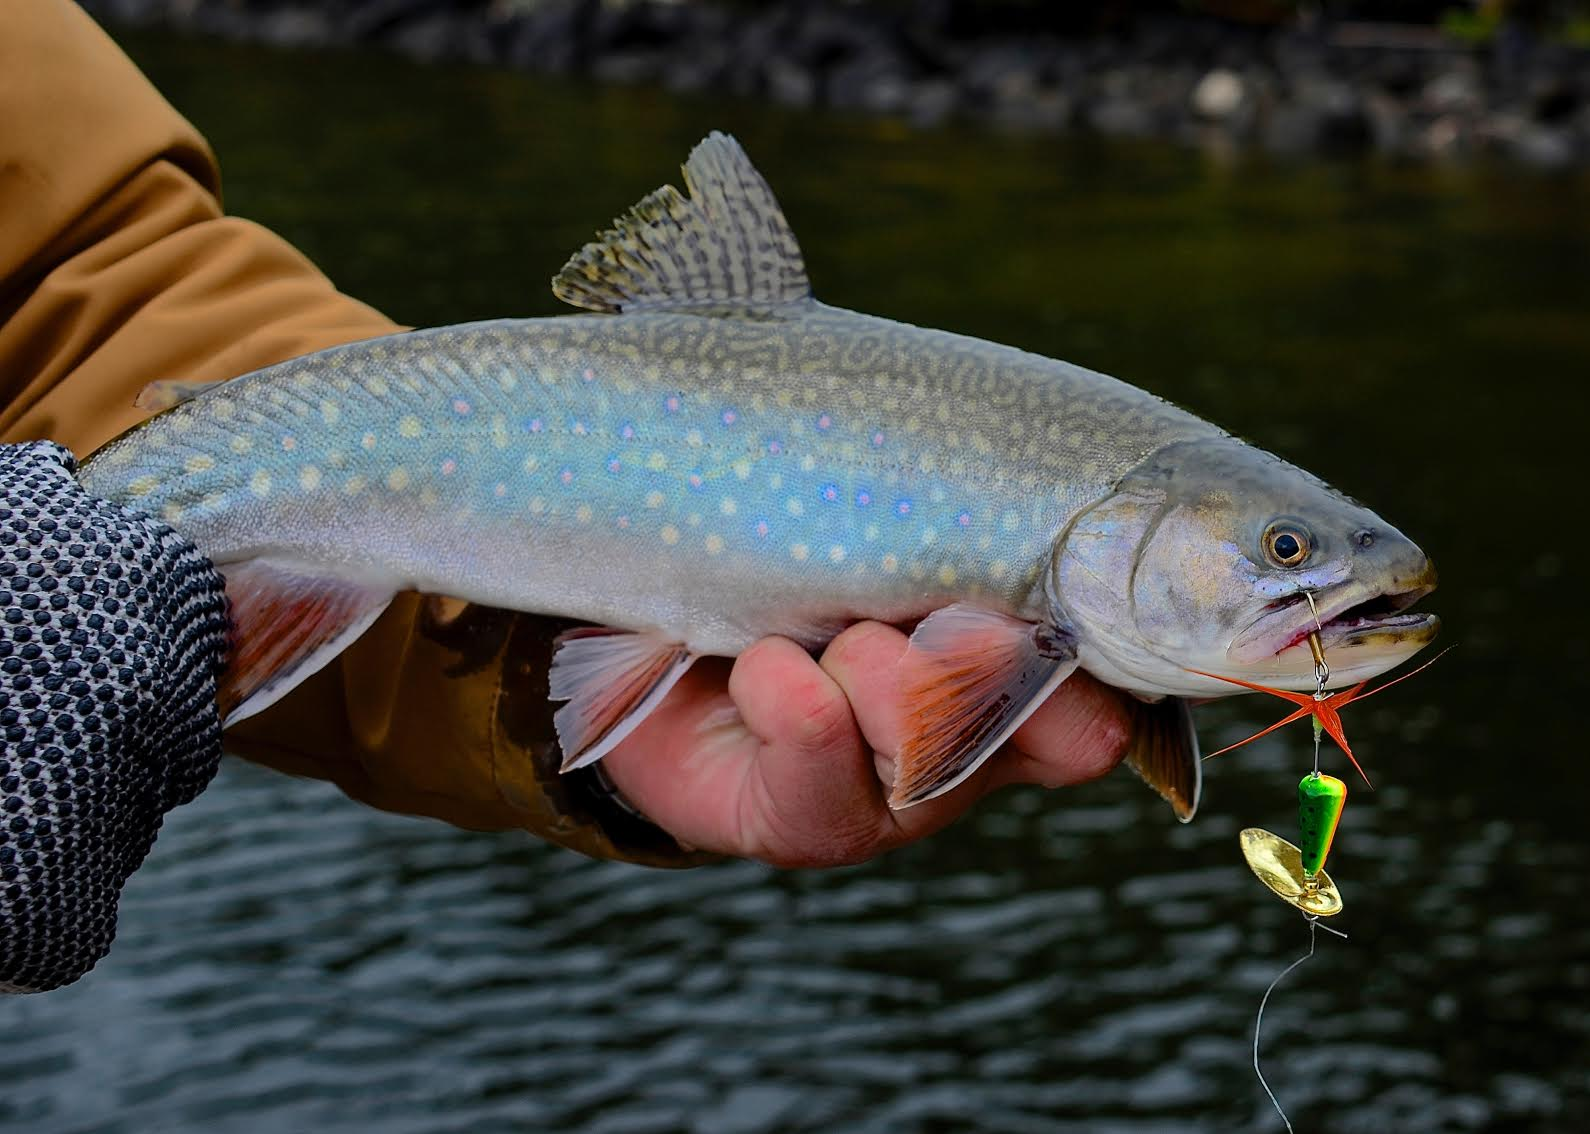 Rooster tail lure for trout for Where to buy fish bait near me